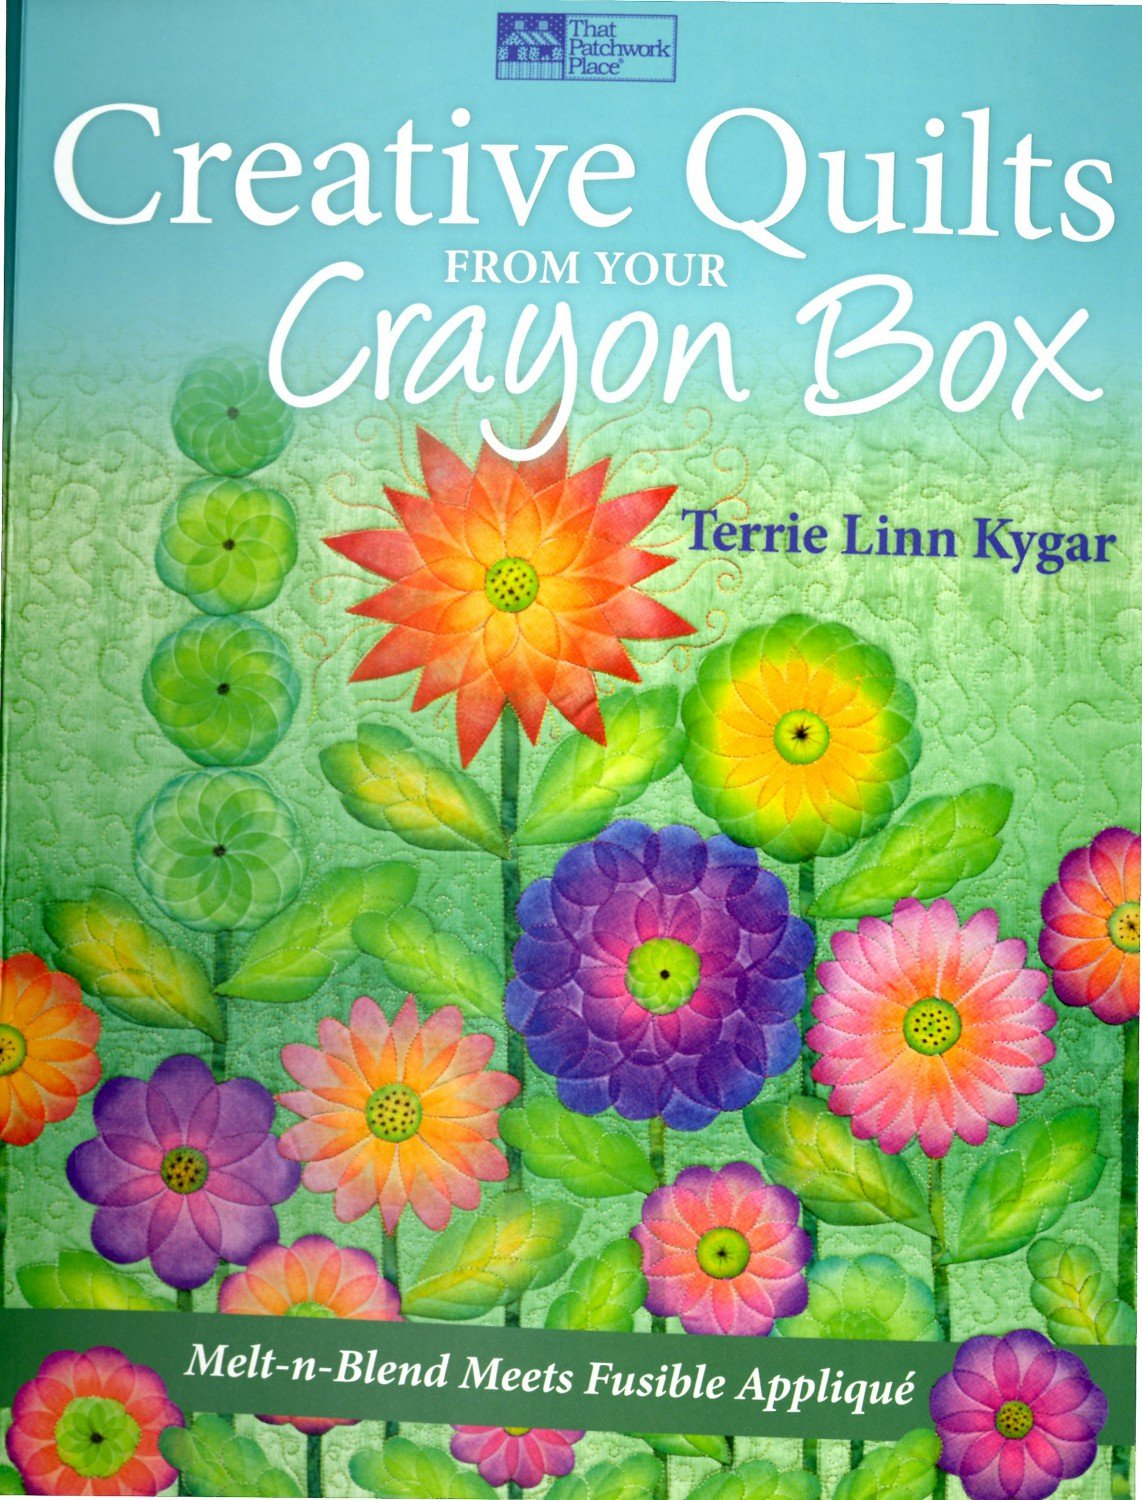 Creative Quilts from your Crayon Box